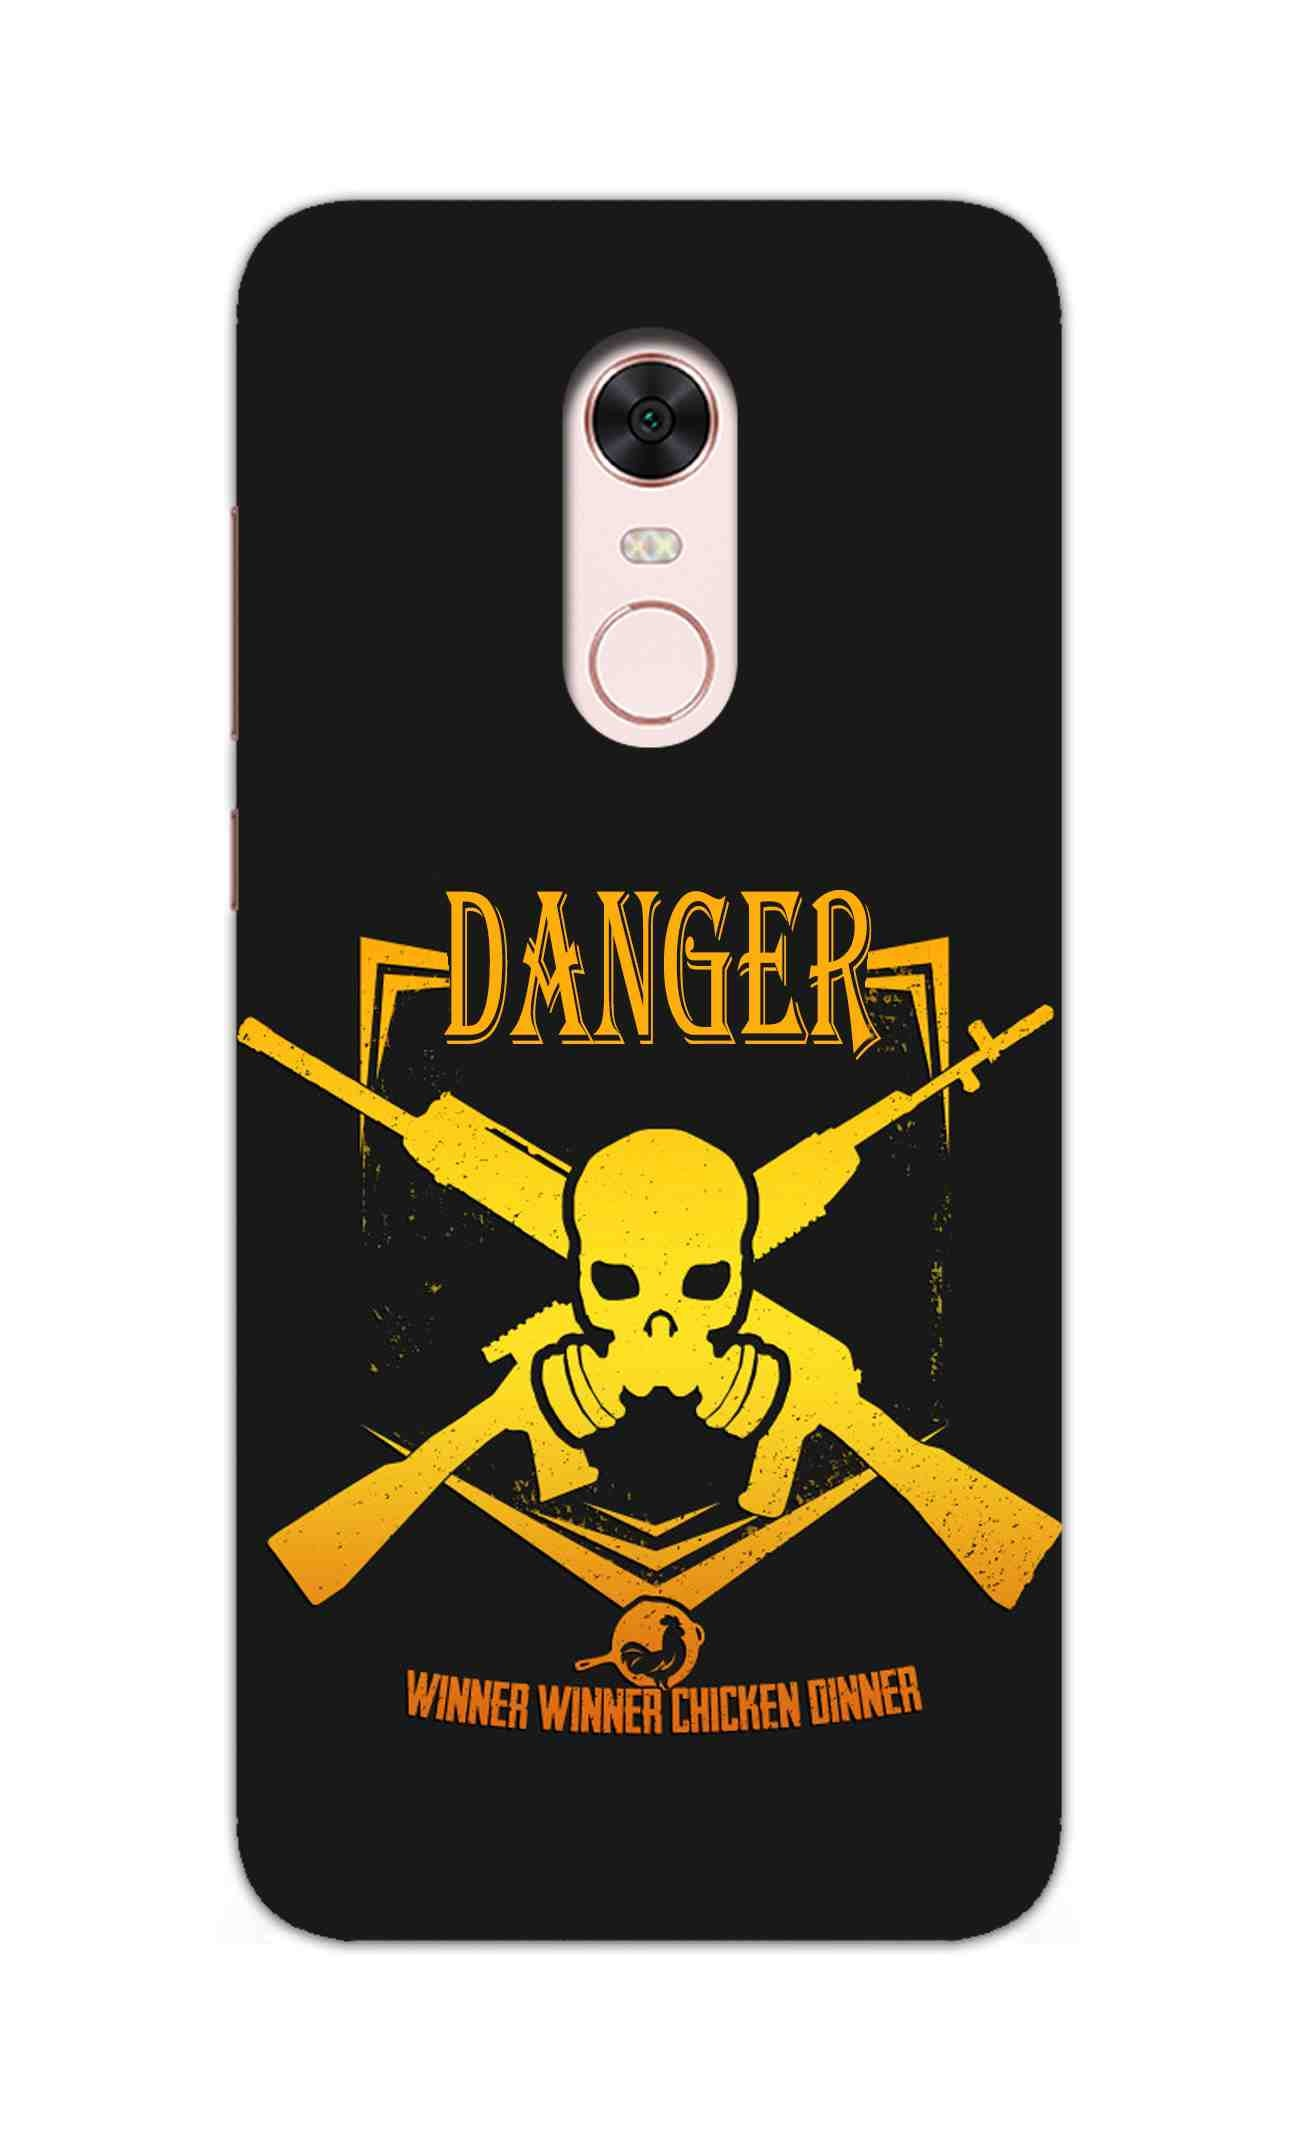 Danger Gun Sign Typography RedMi Note 5 / RedMi Note 5 Plus Mobile Cover Case - MADANYU